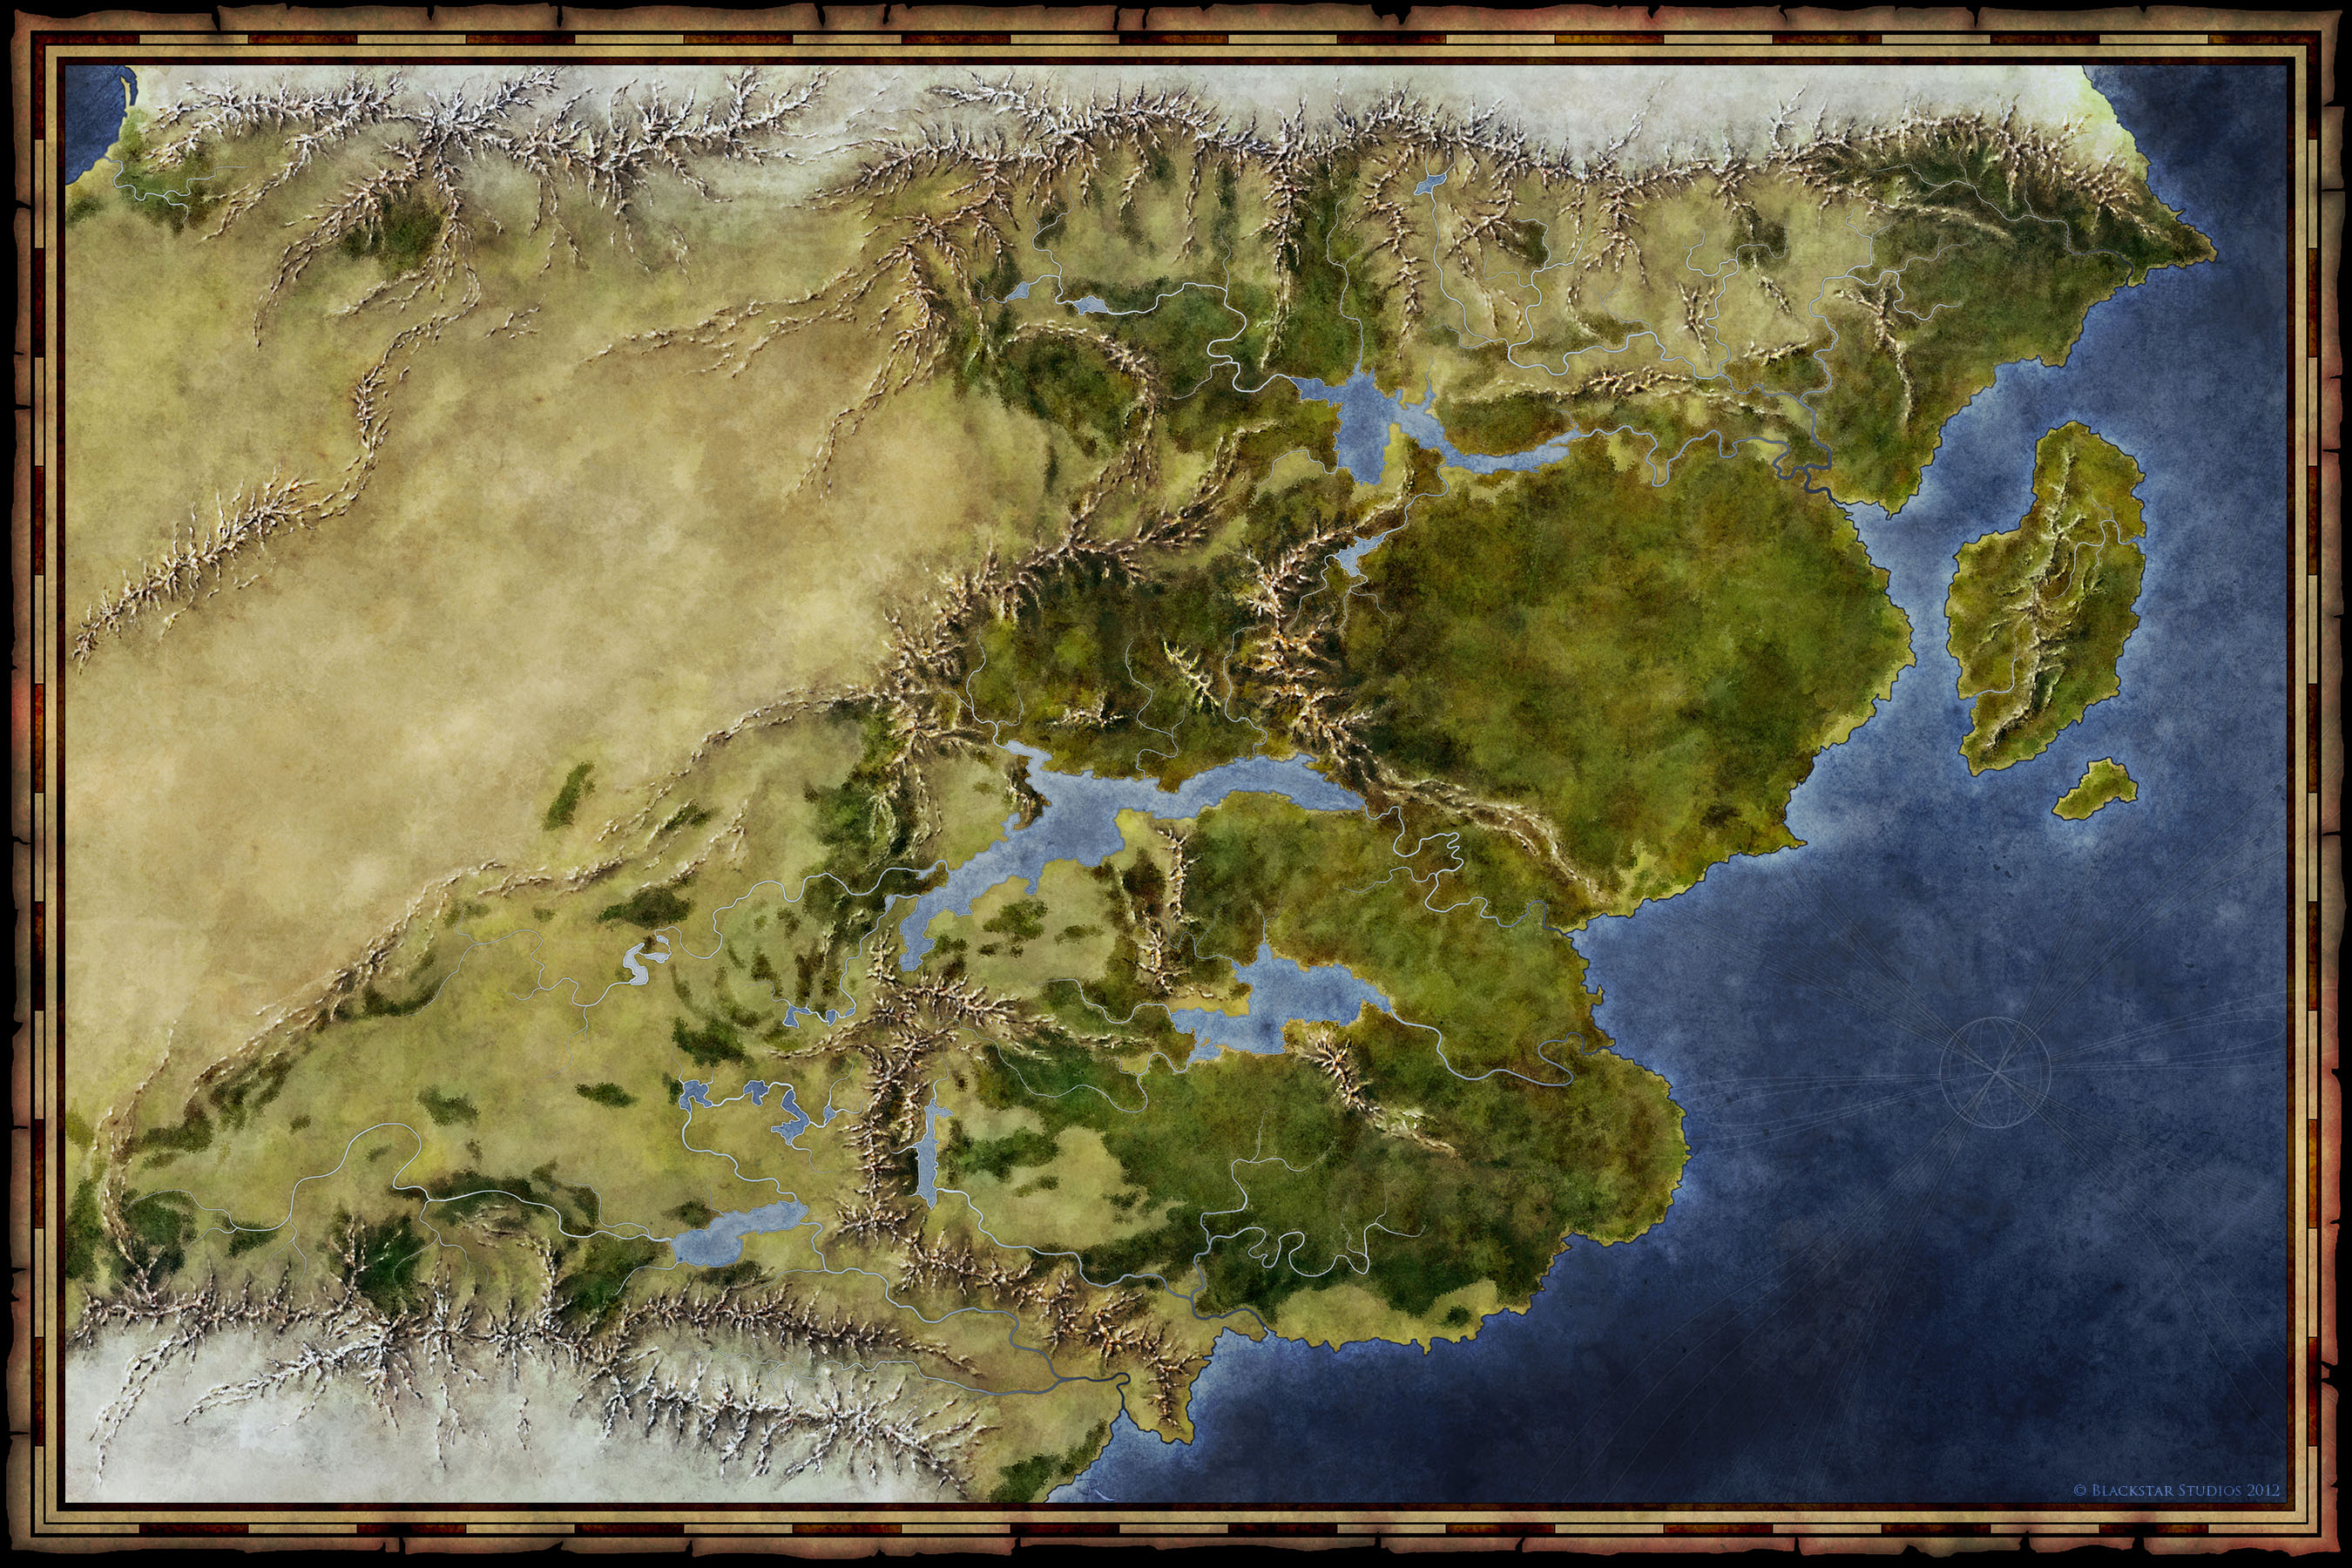 Fantasy World Map - Saemyyrfinalunlabelledwebpreview